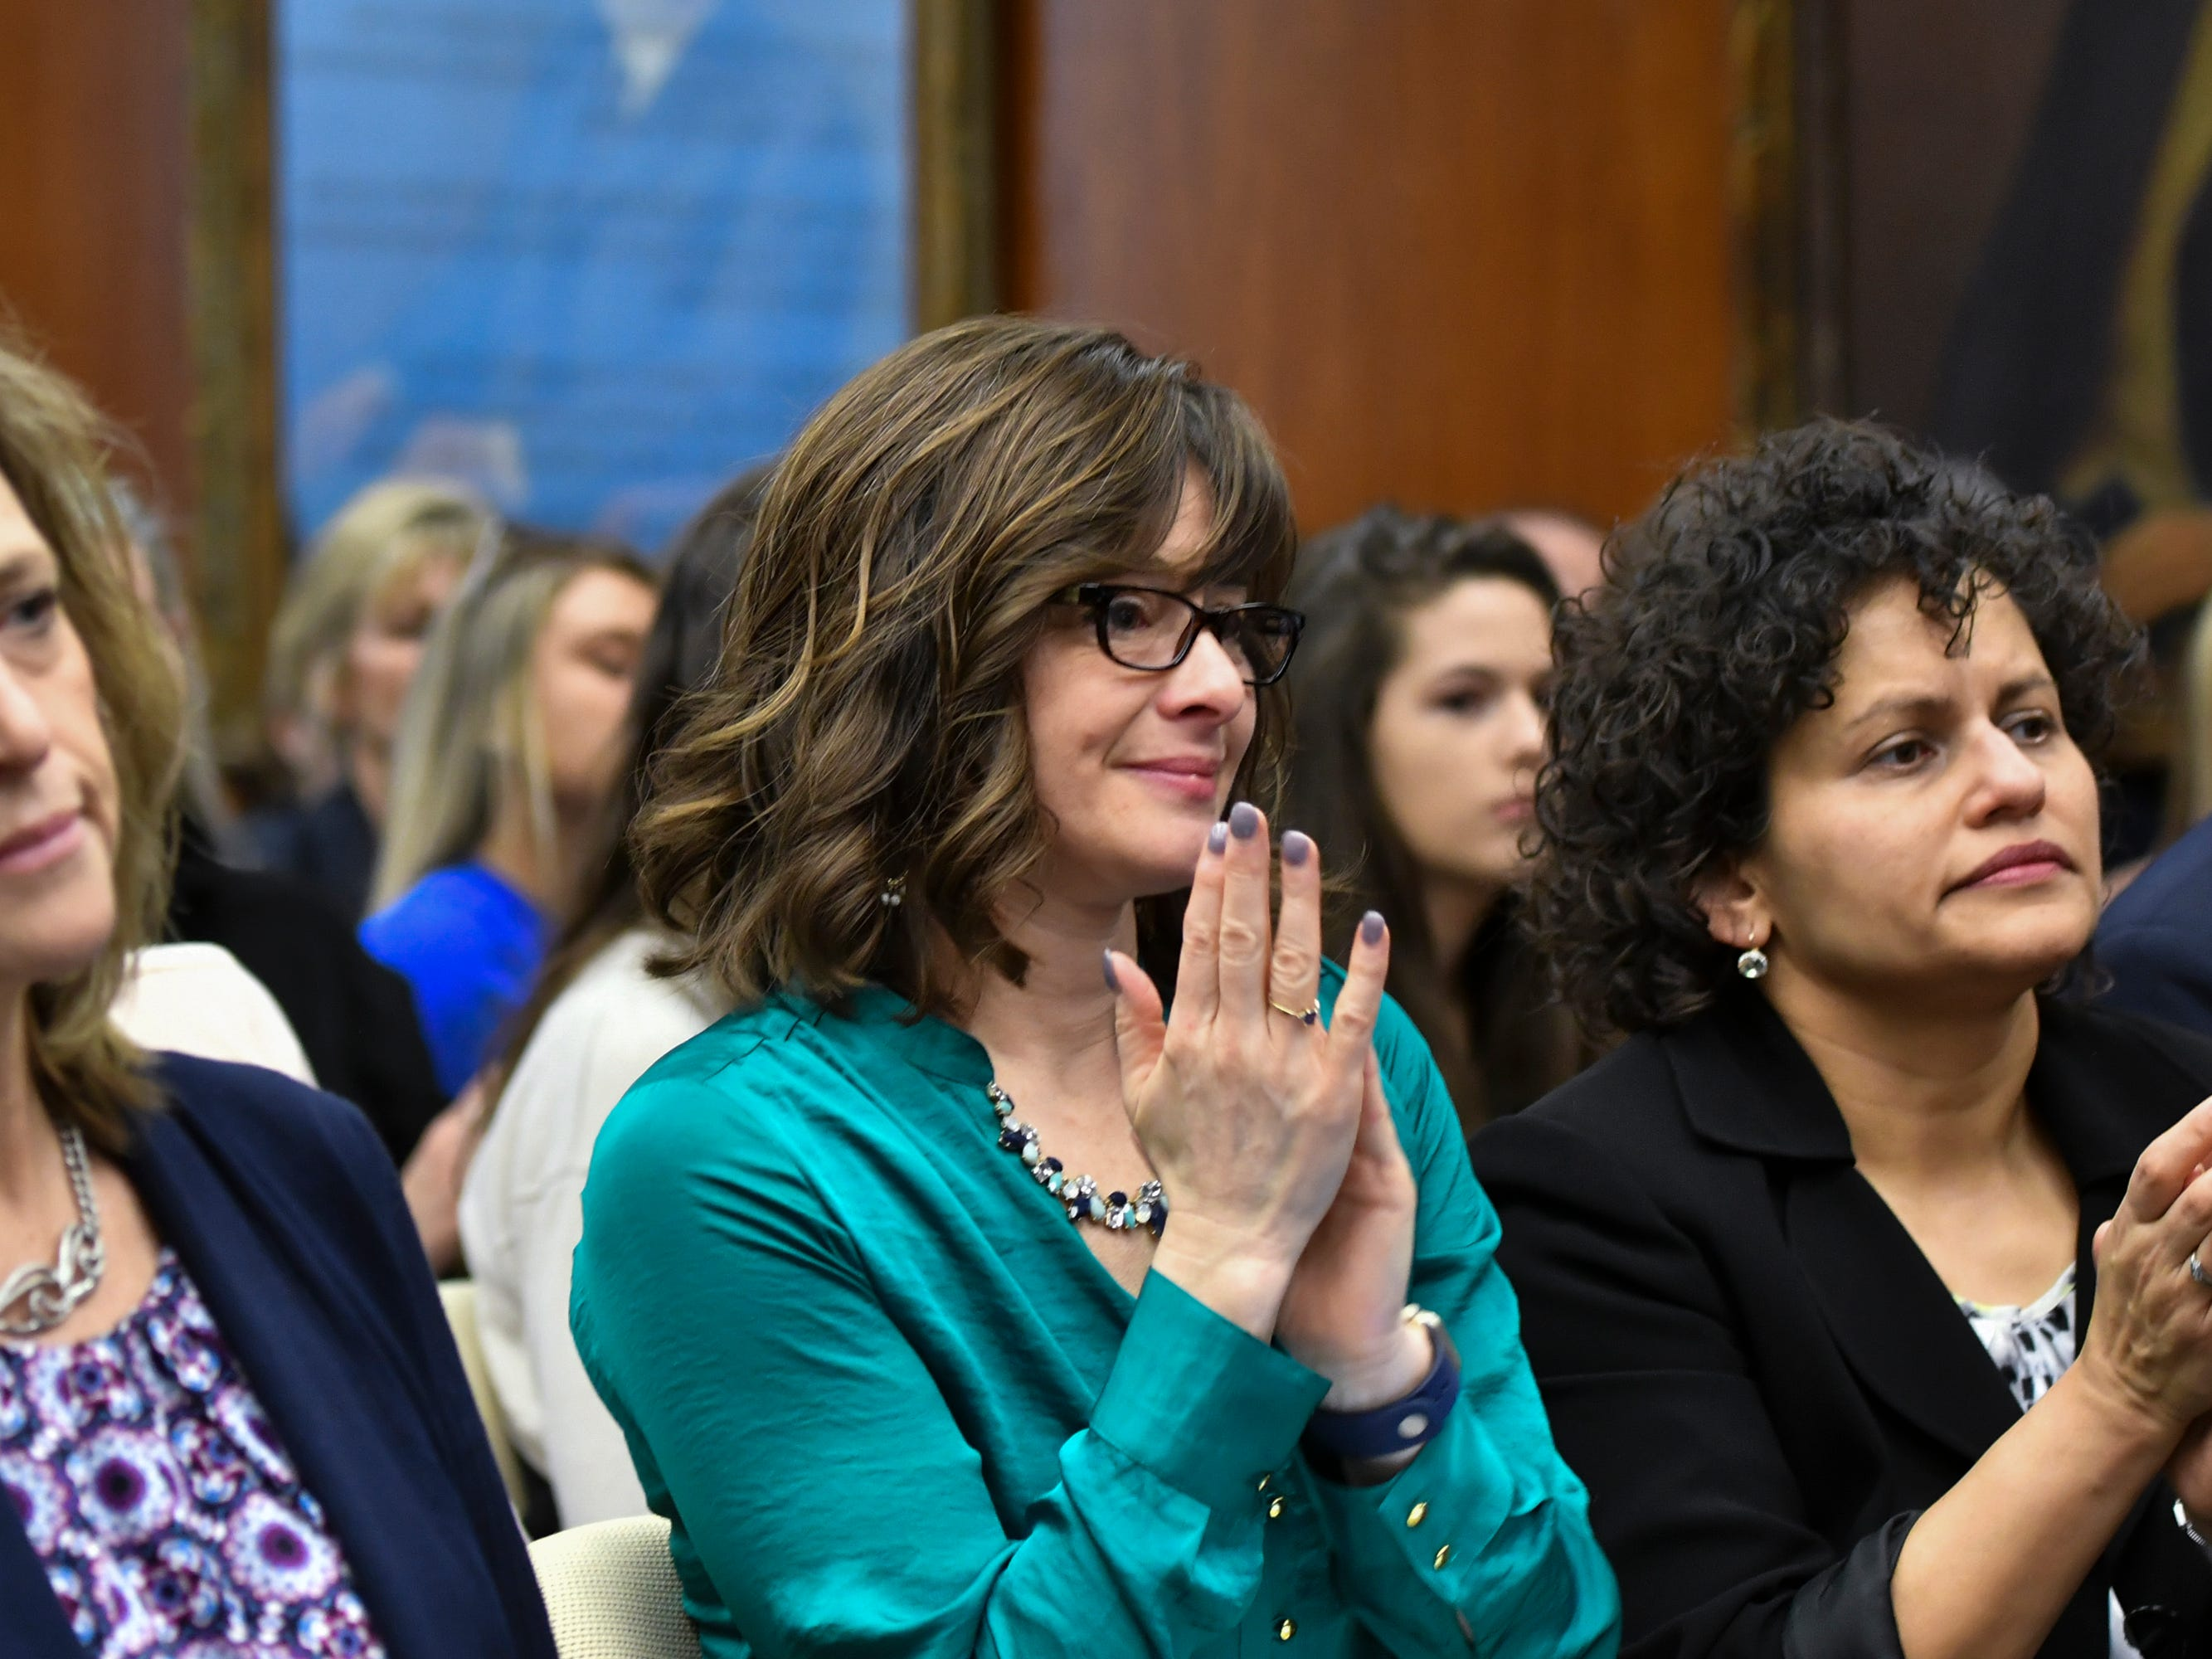 People react after MSU interim President Satish Udpa apologized to victim of Larry Nassar during the Board of Trustees meeting Friday, Feb. 15, 2019, at MSU.